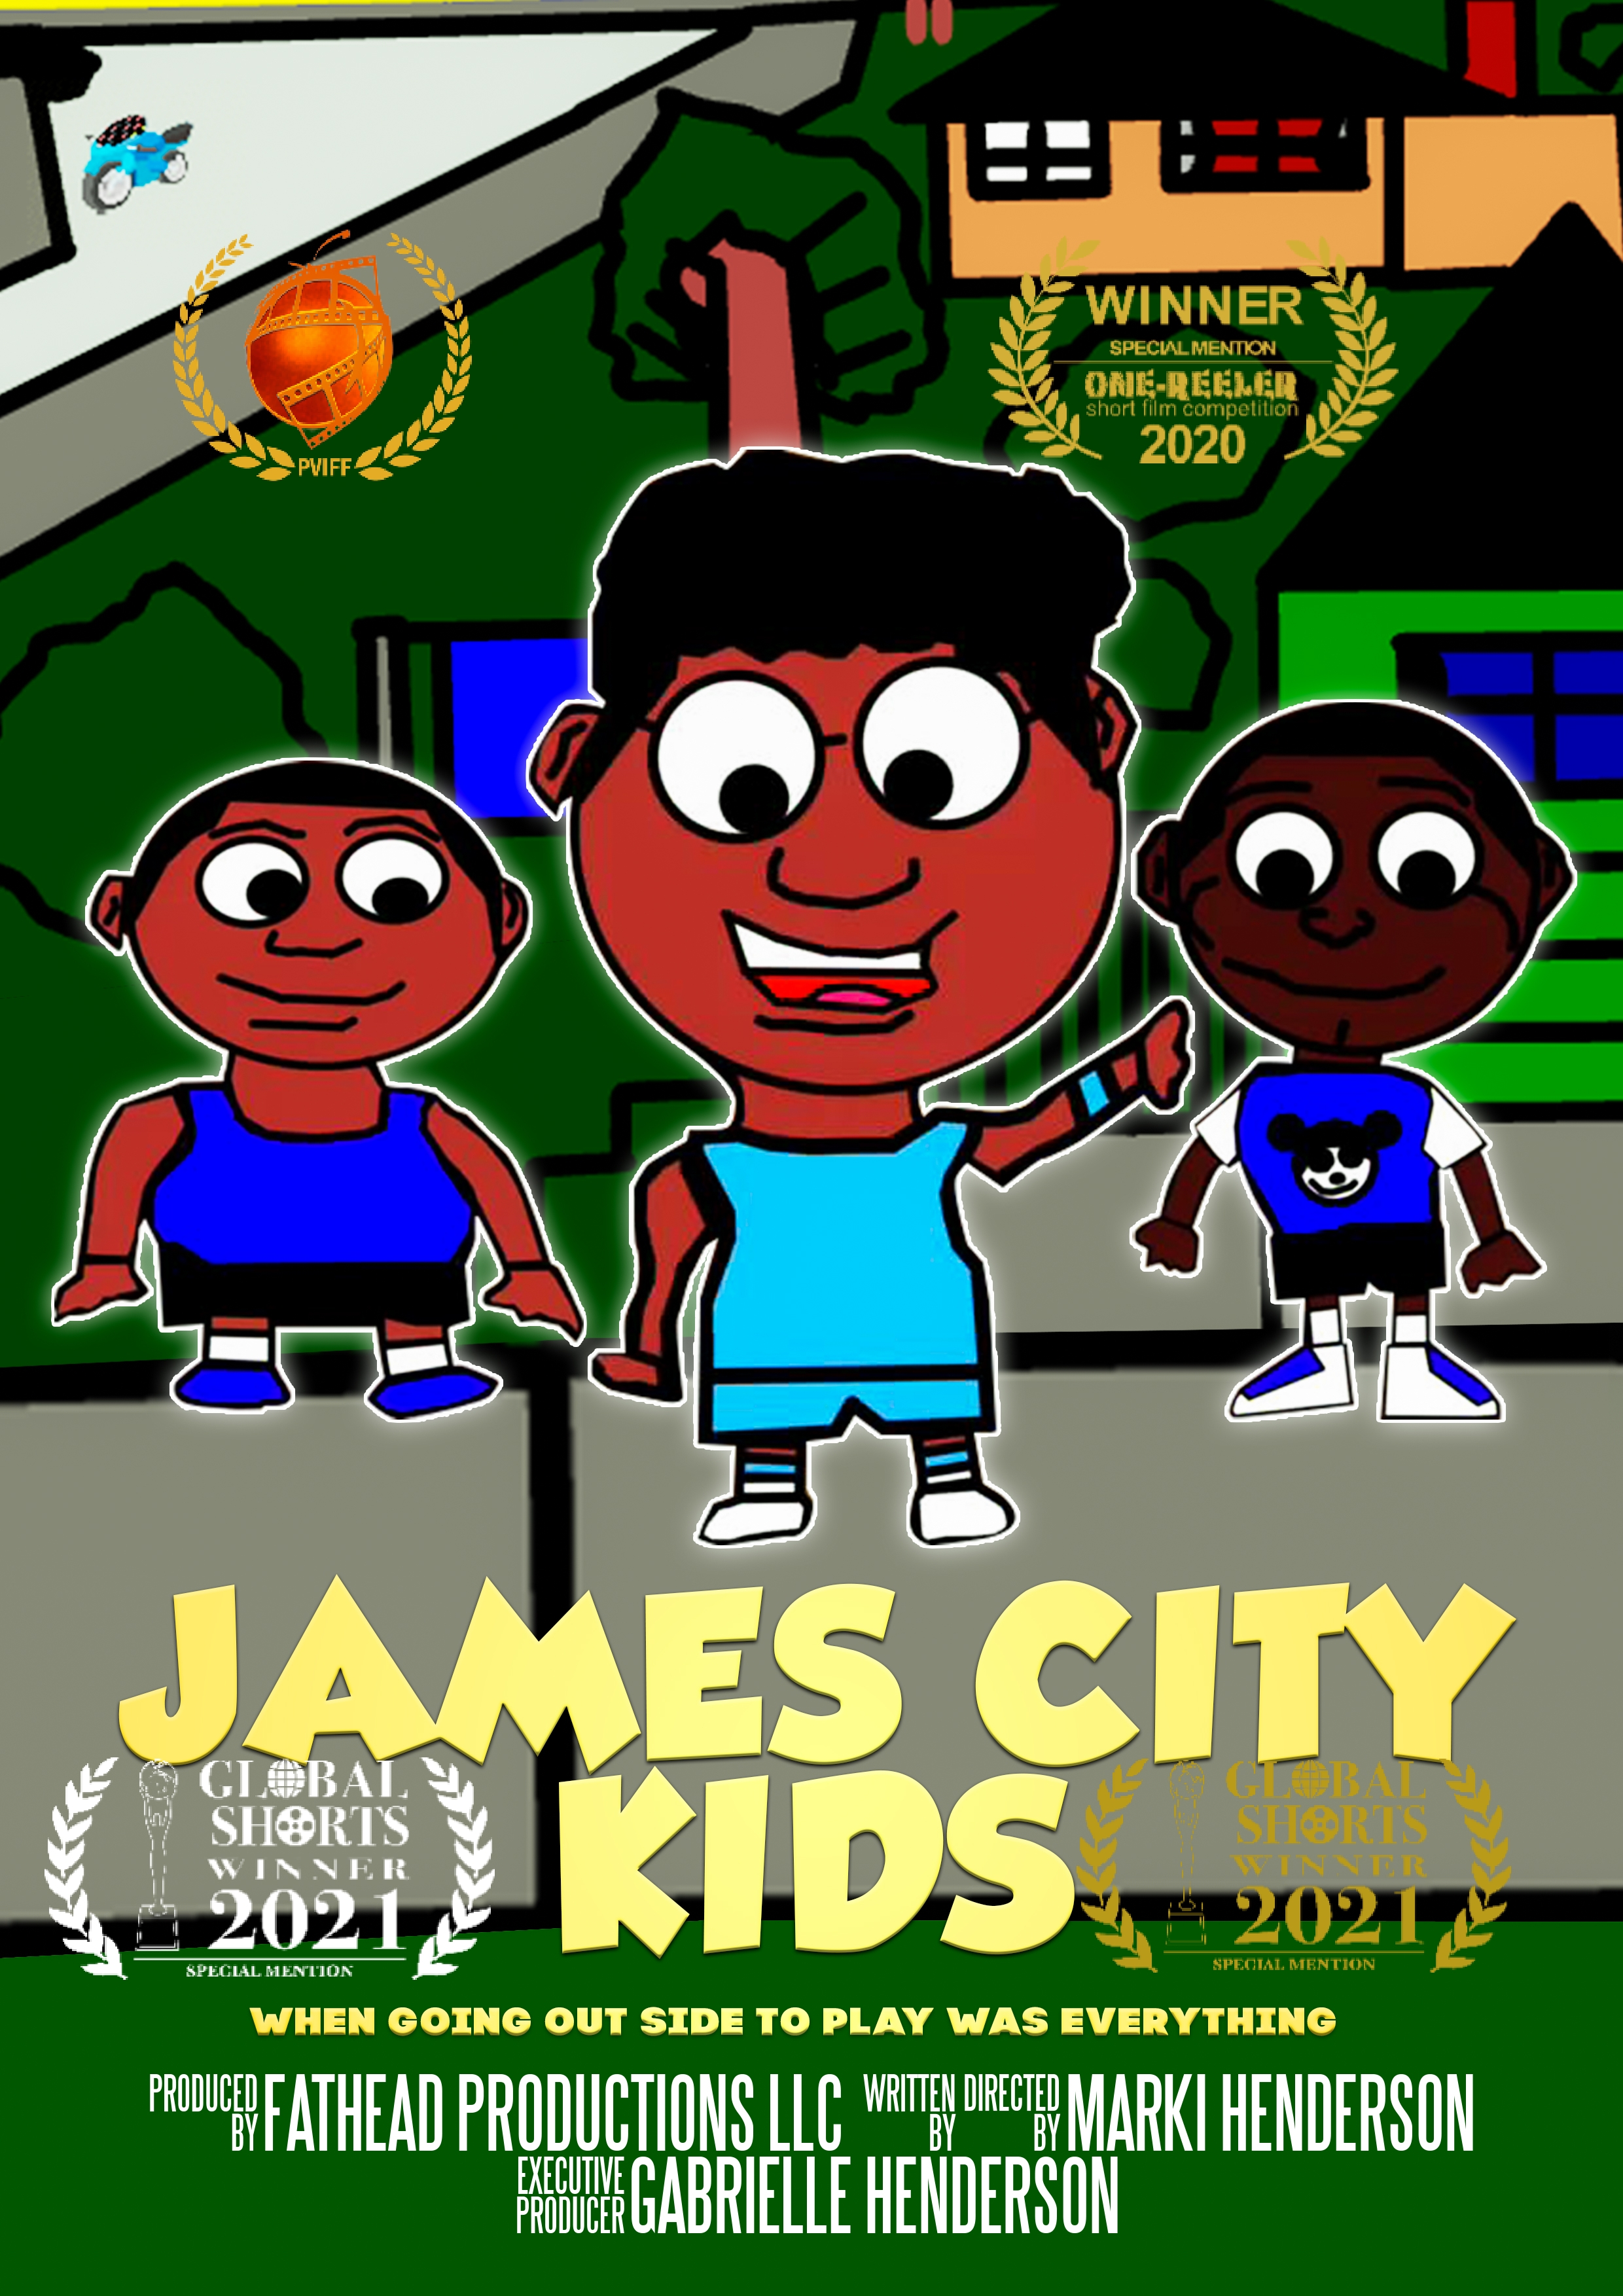 Fathead Productions is now a finalist for the 16th Anniversary Peachtree Village International Film Festival (PVIFF)